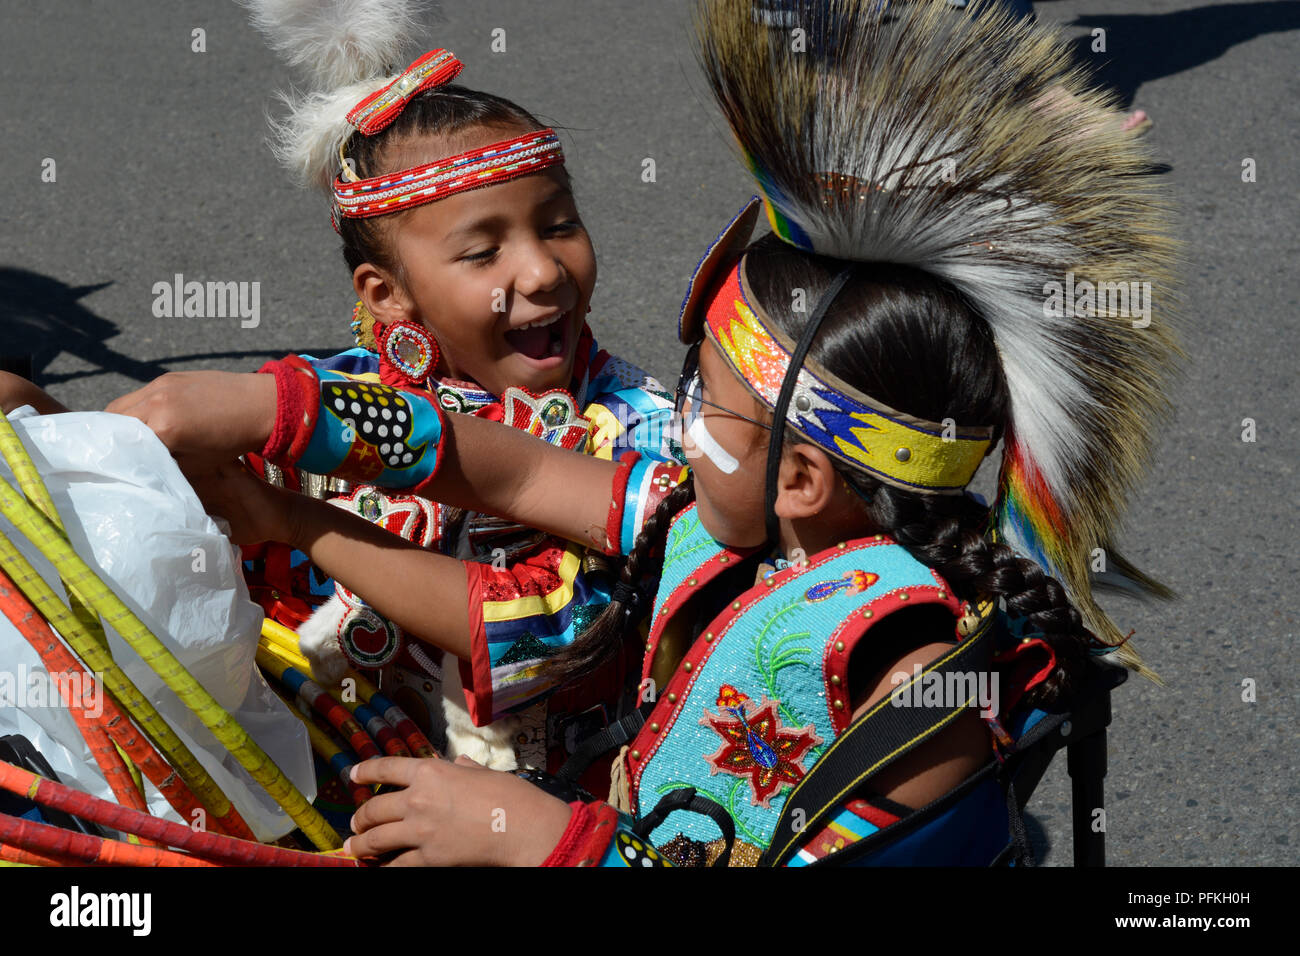 Native-American children wearing traditional Plains Indian regalia at the Santa Fe Indian Market. Stock Photo